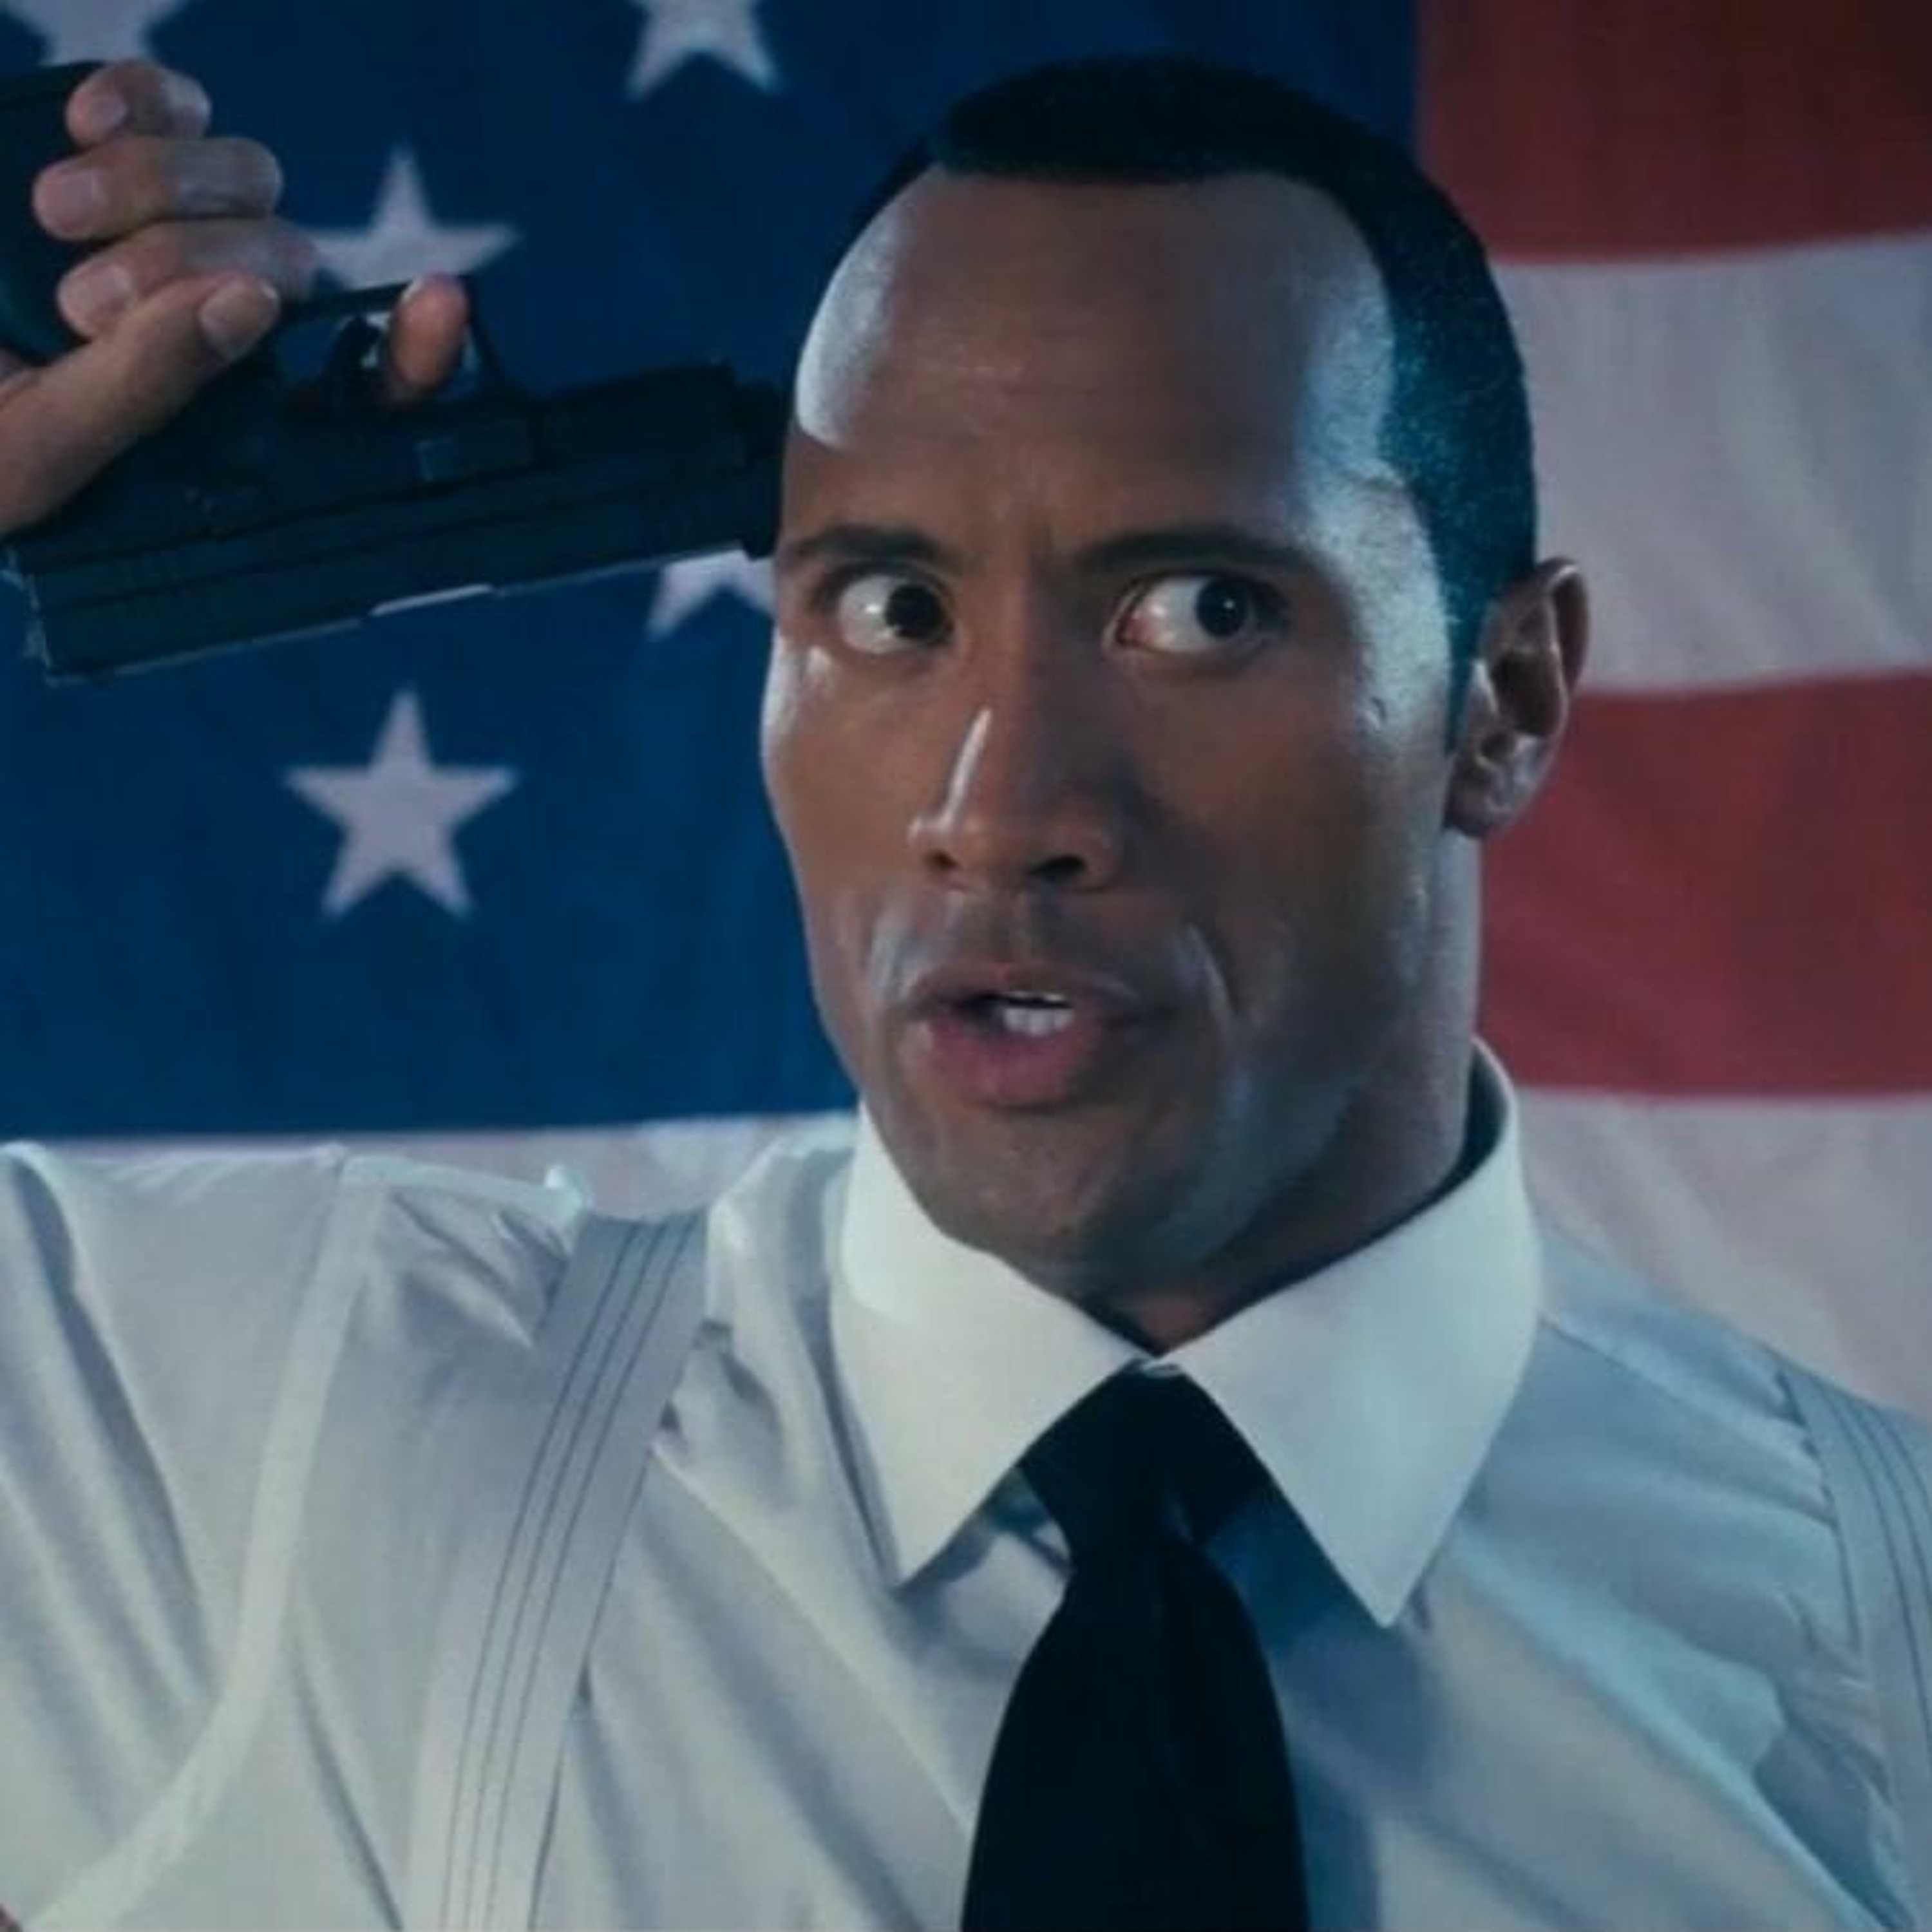 Southland Tales (2007) - Patreon Requested Movie Review! #375